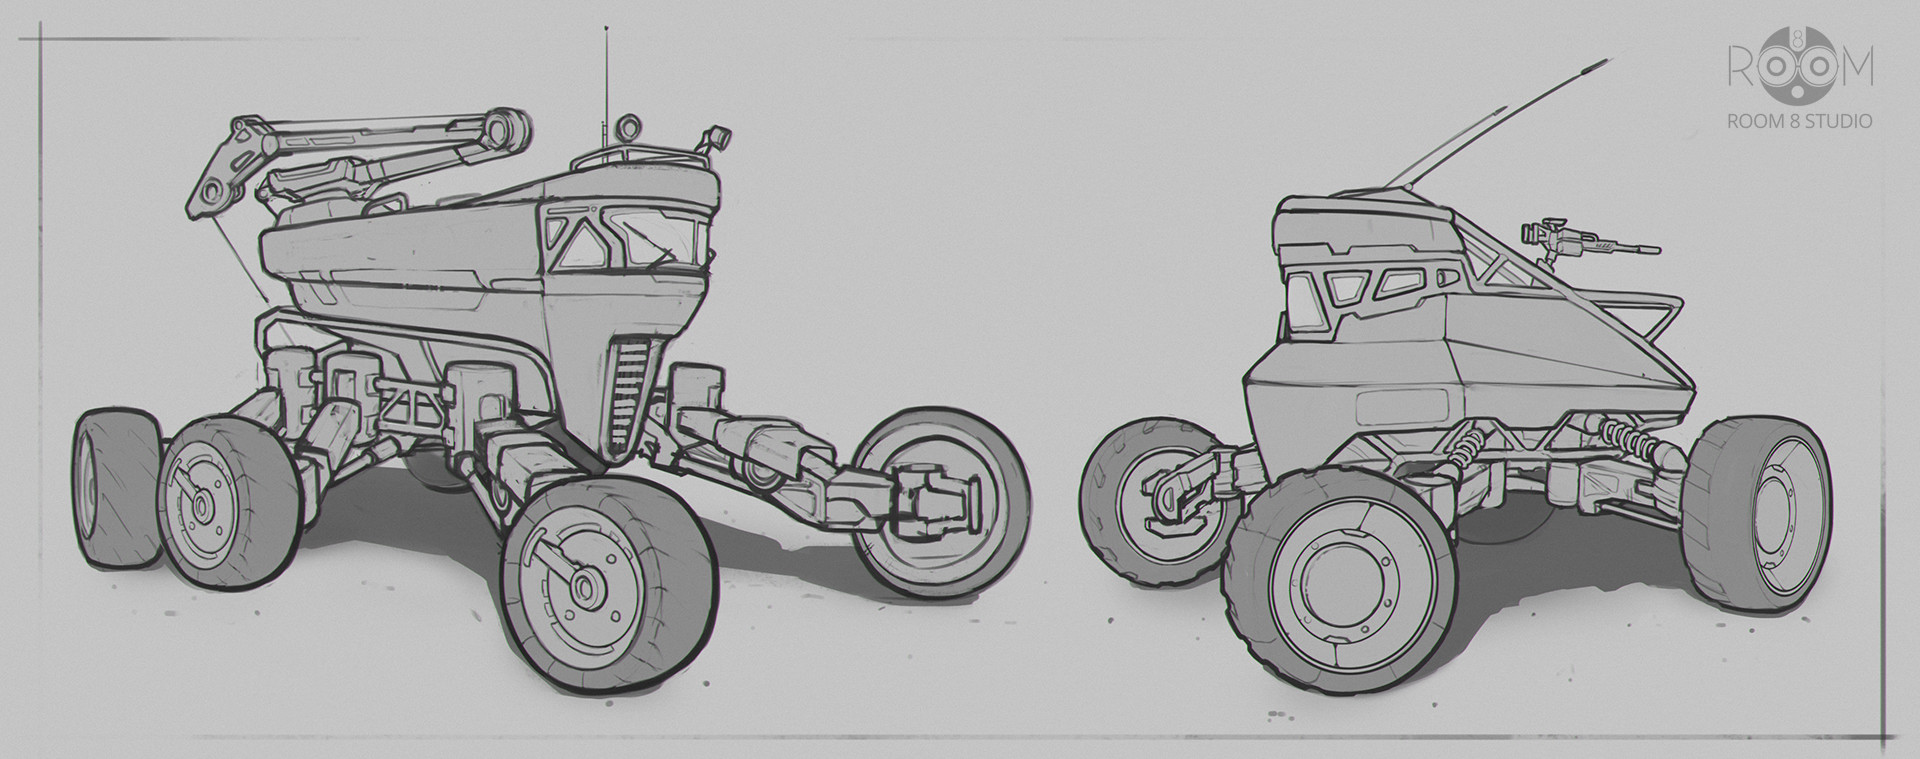 Room 8 studio sci fi vehicle sketches 04 01 2018